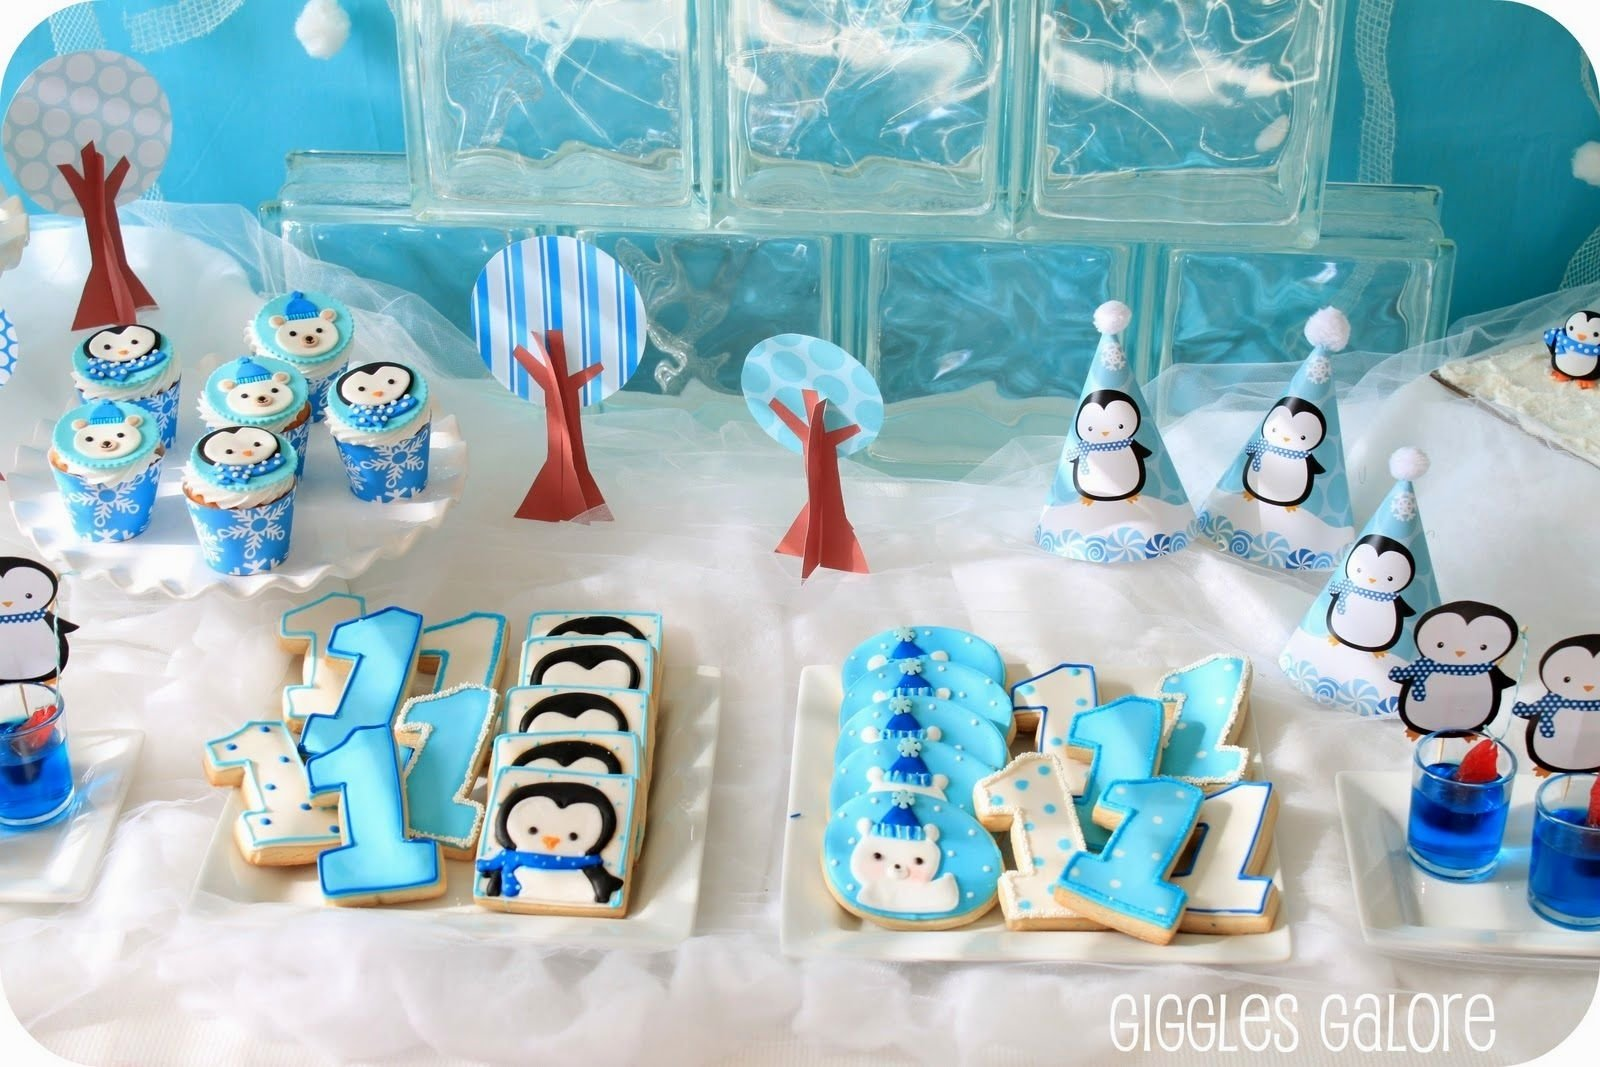 10 Most Recommended 1 Year Old Boy Birthday Party Ideas stupendous 3 year mickey mouse birthday party ideas food mickey 4 2020